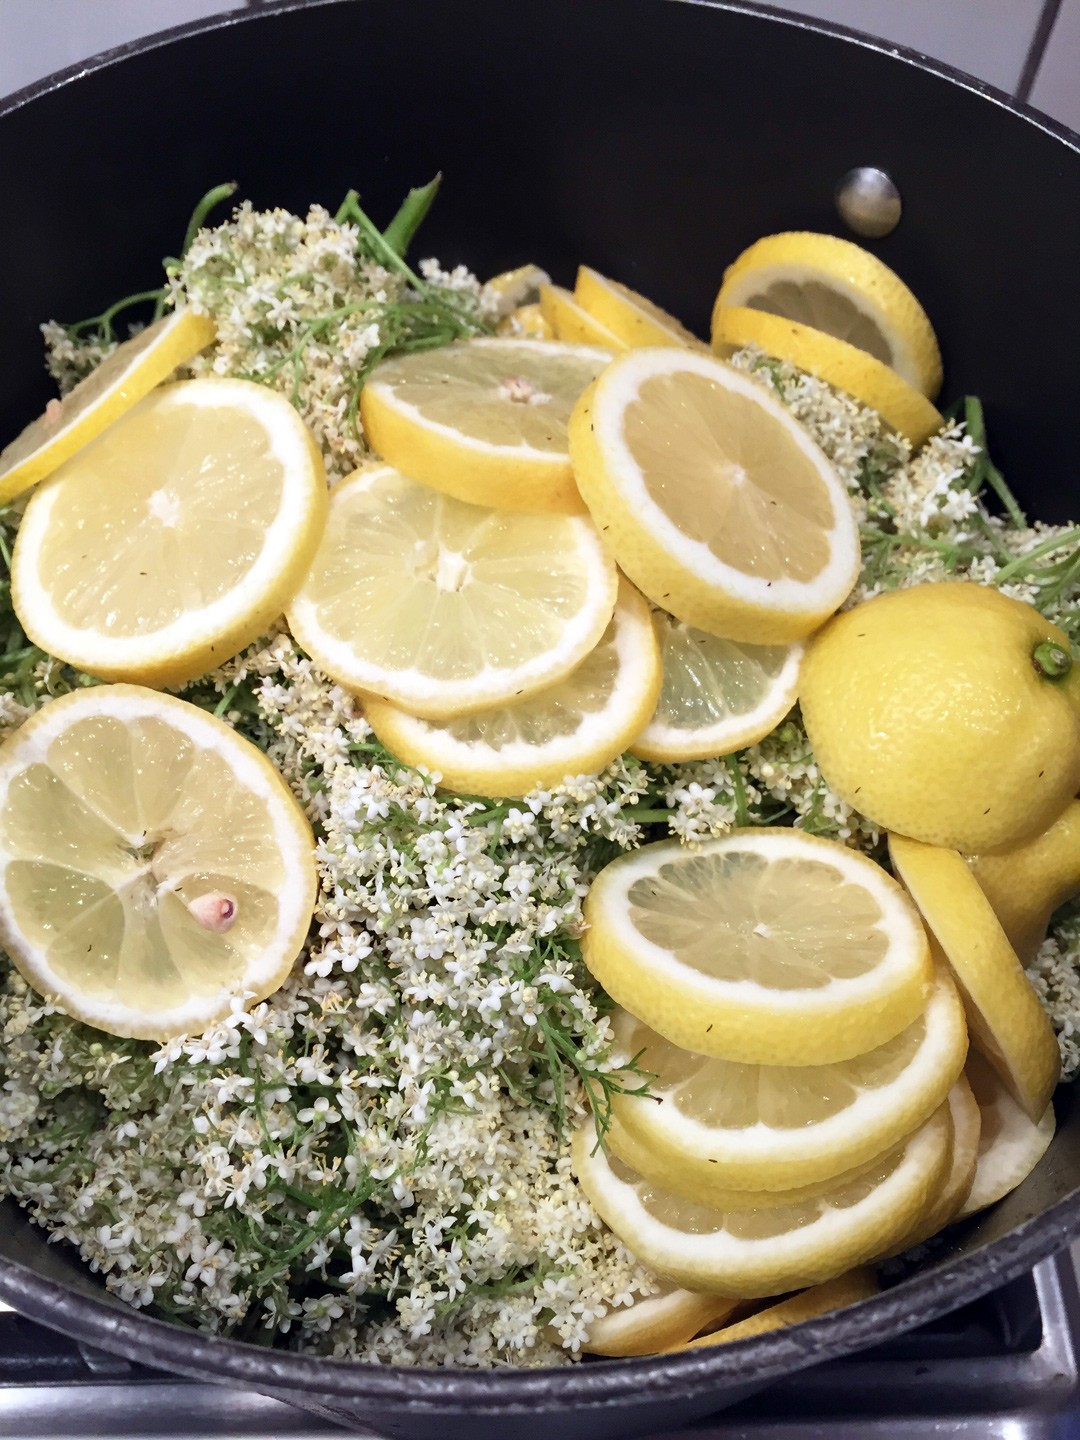 Leave the elderflower mixture to soak for 2-4 days. No cooking needed! Follow the easy steps from the Chalk & Moss blog.